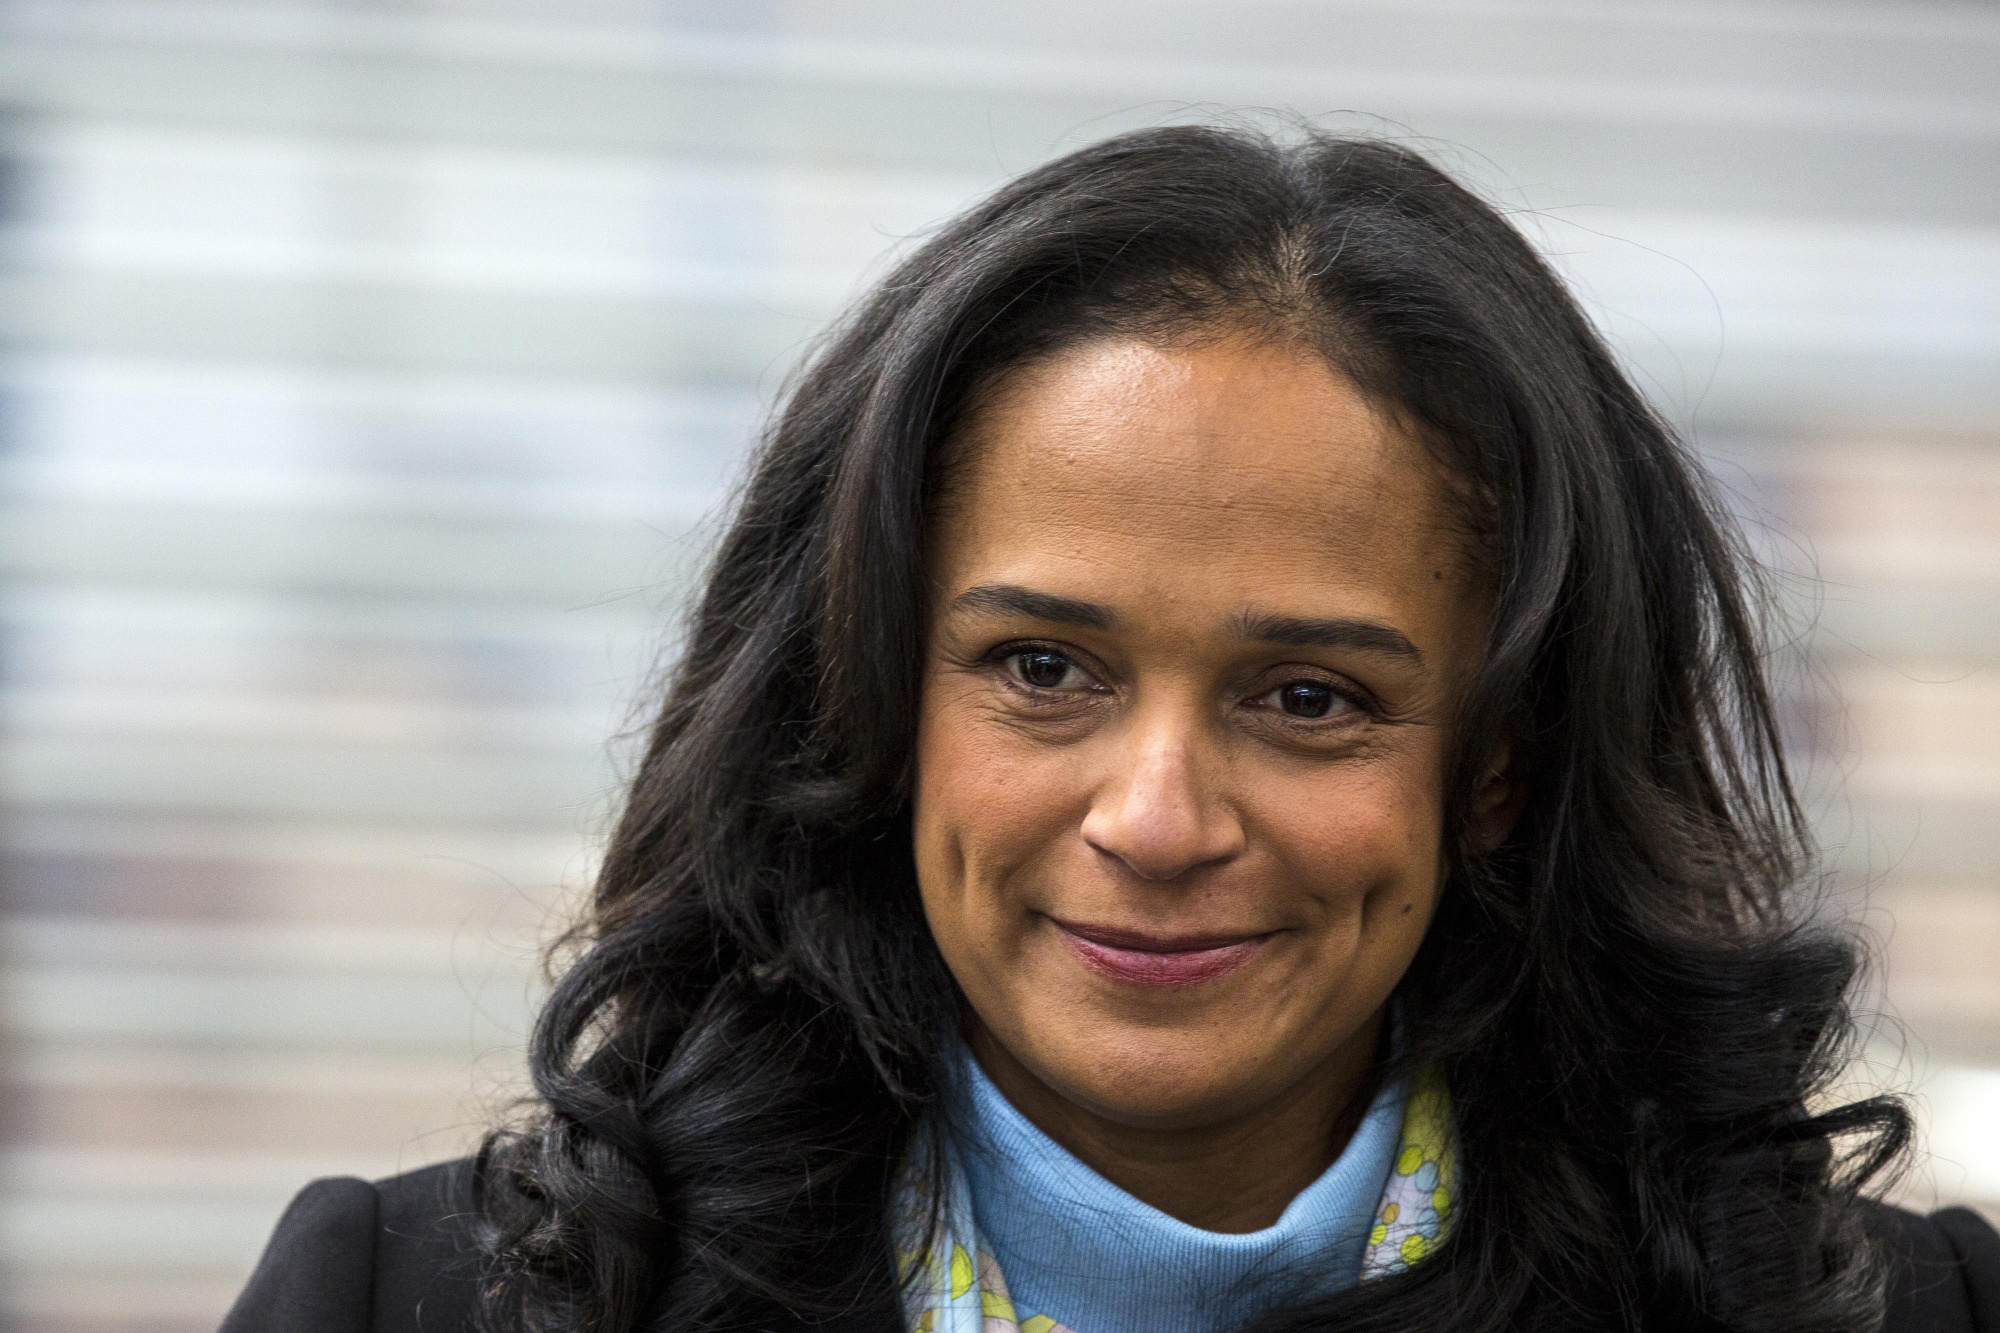 bloomberg.com - Henrique Almeida - Africa's Richest Woman to Be Ousted at Angola Telecoms Company